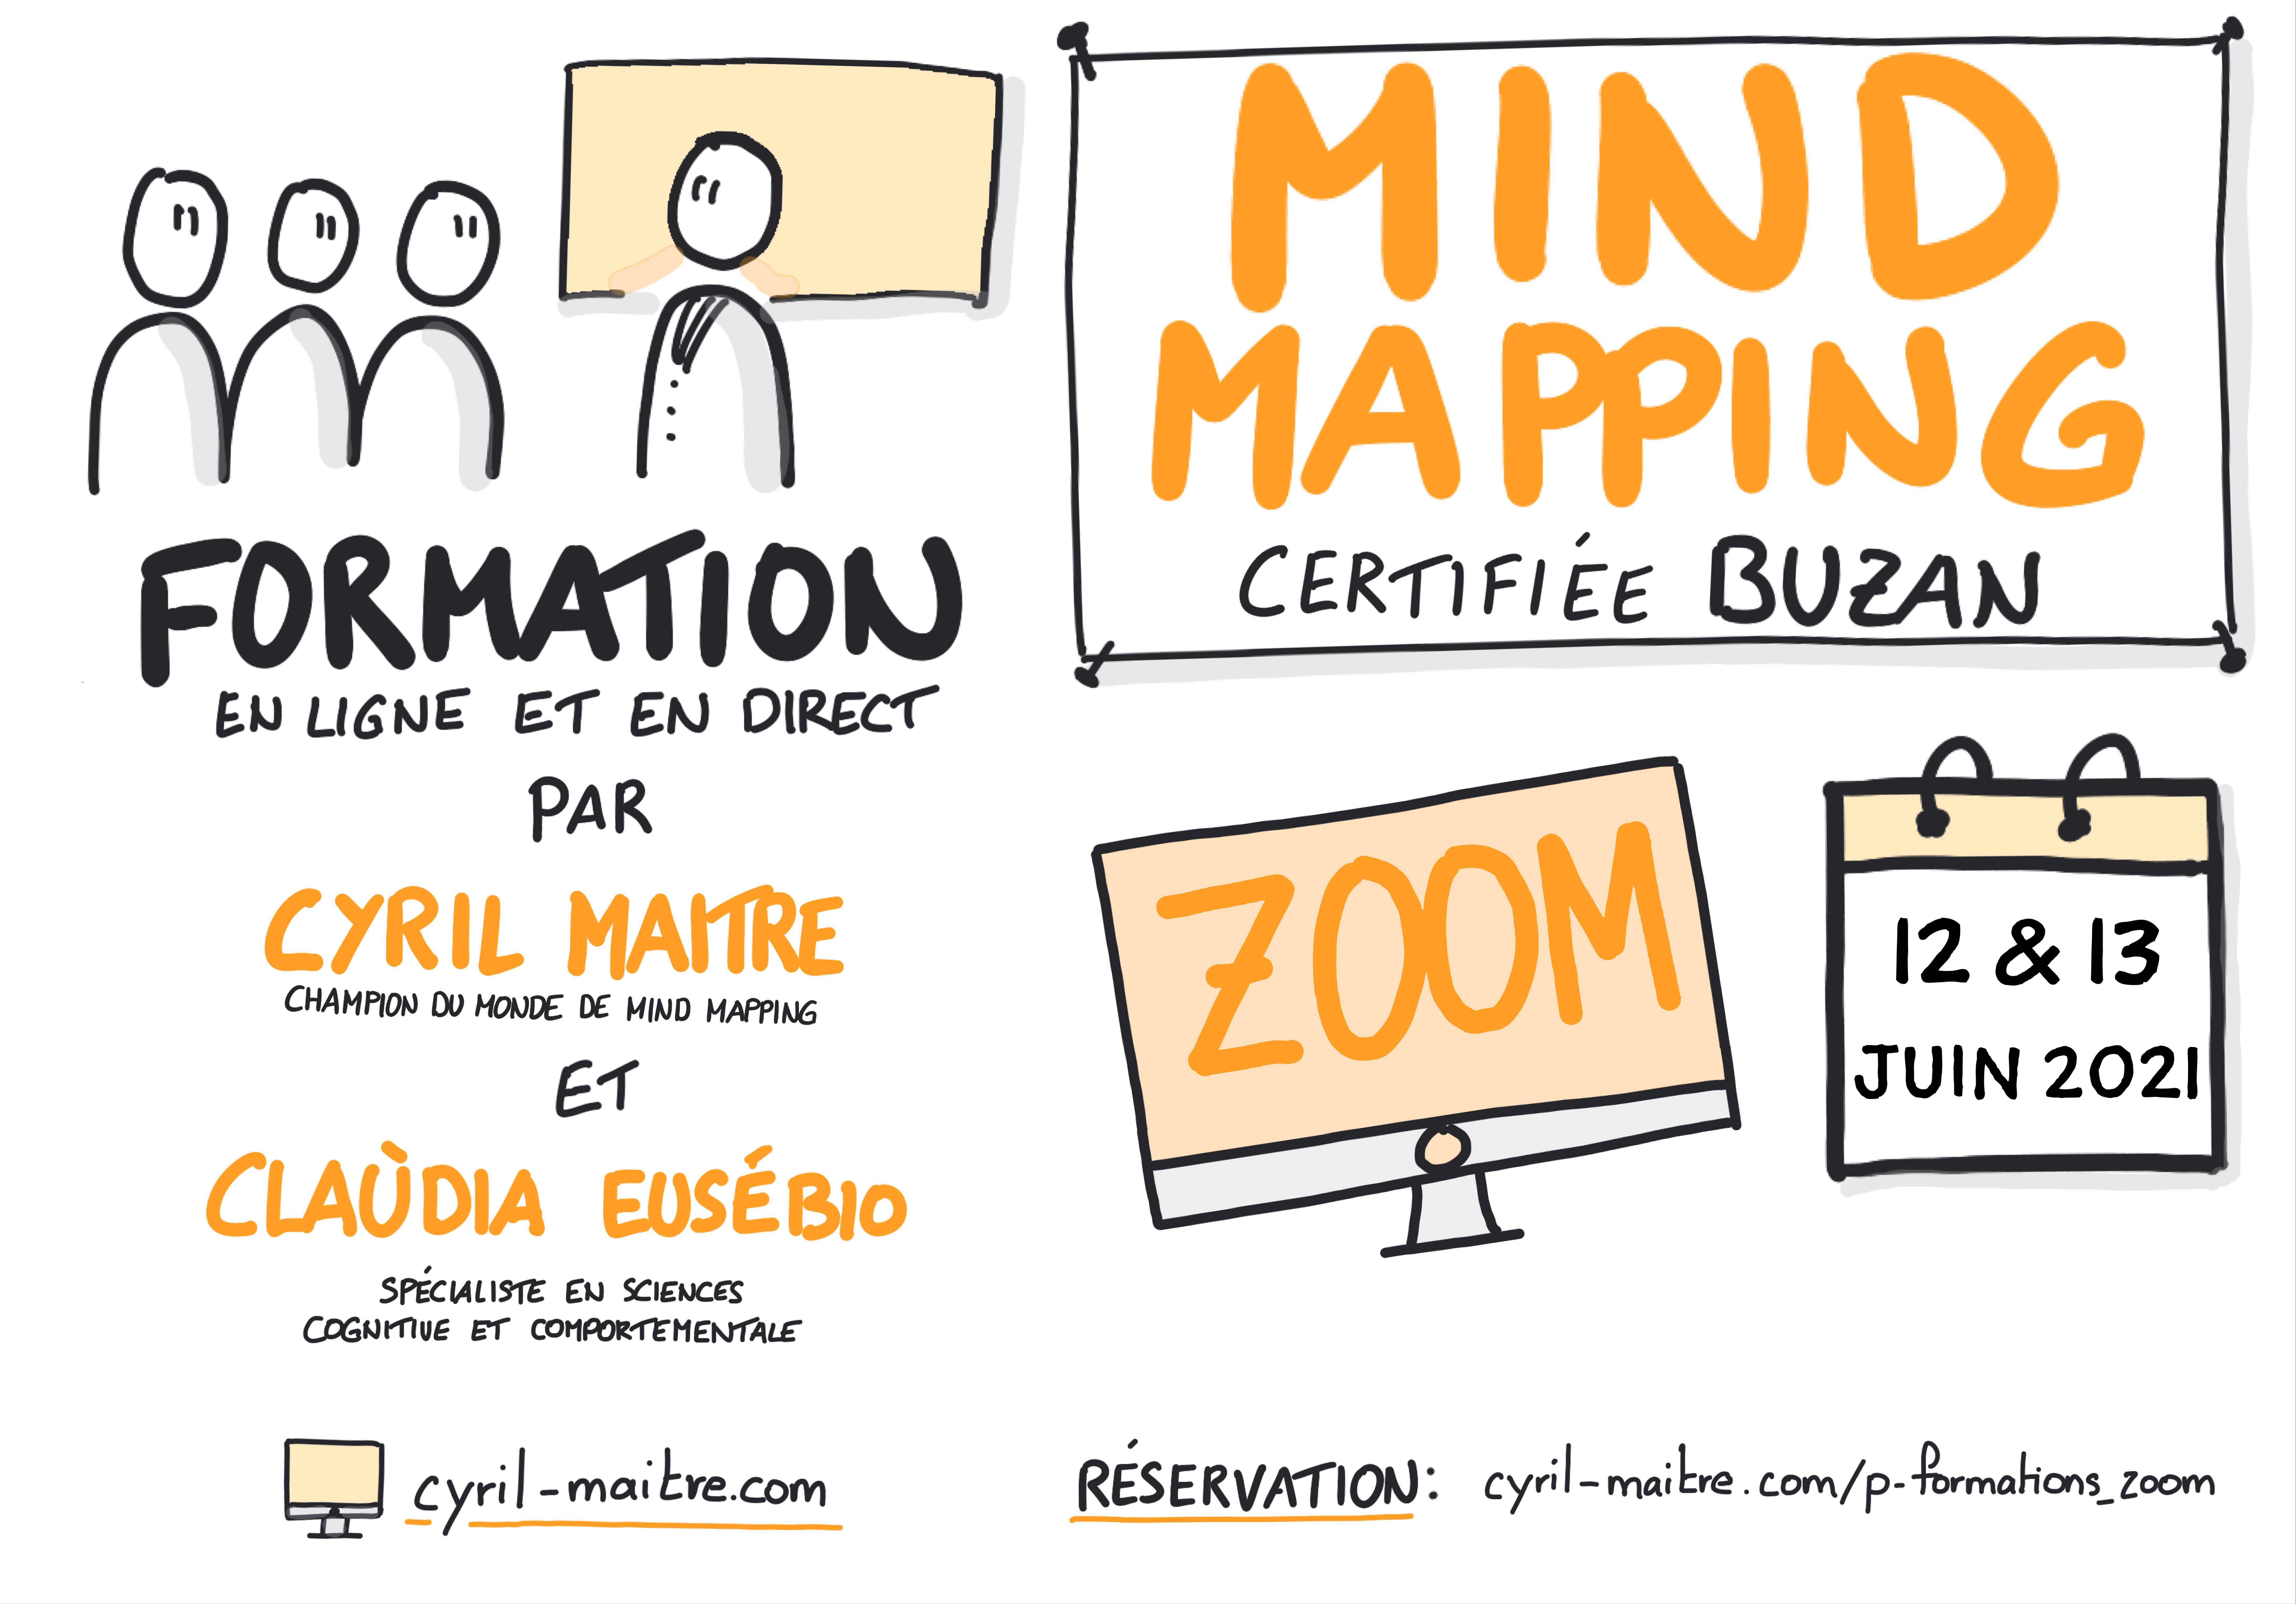 cyril maitre claudia eusebio formation mind mapping